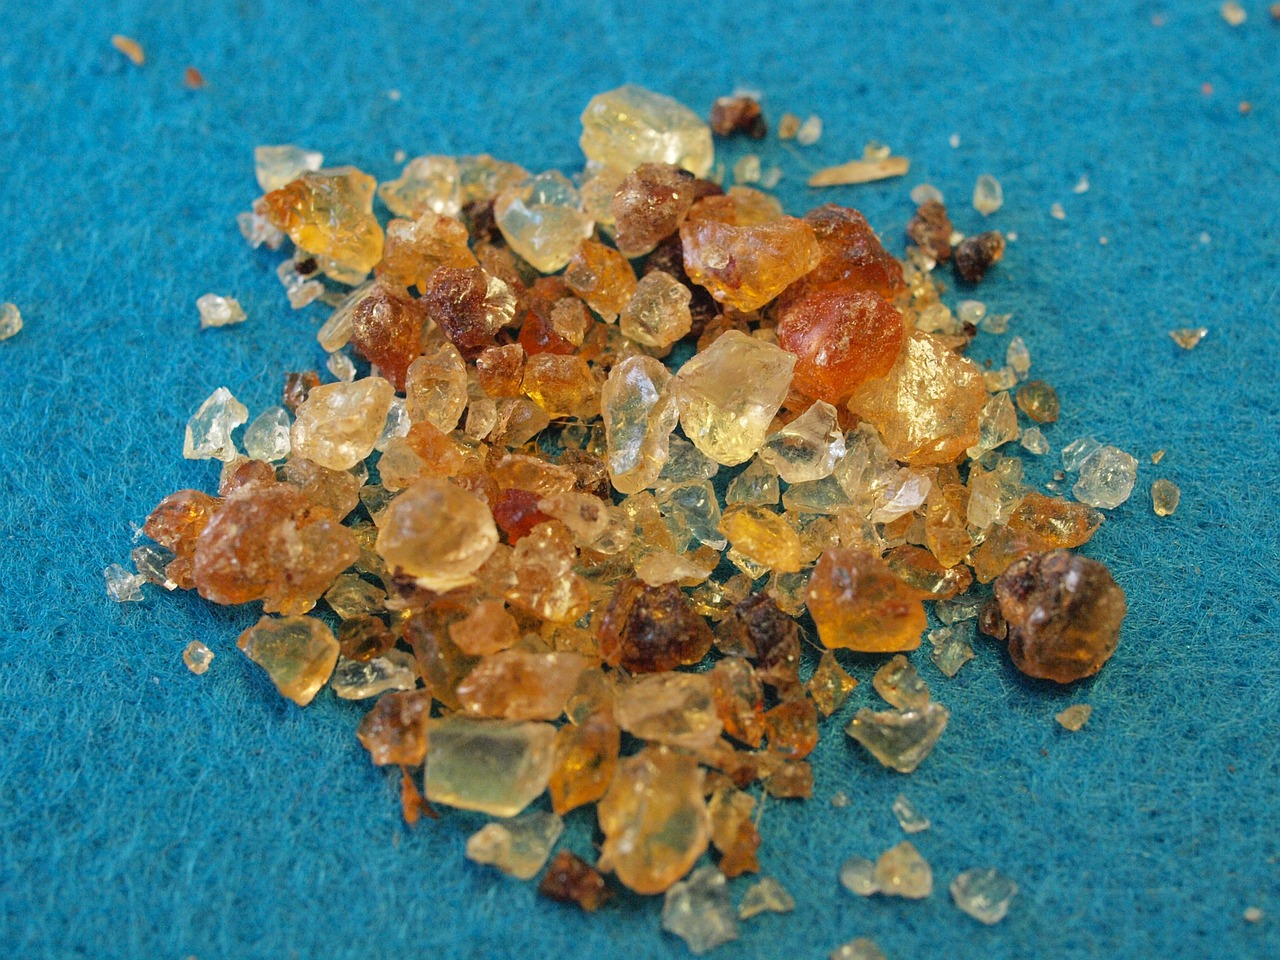 Pile of gum arabic on blue fabric